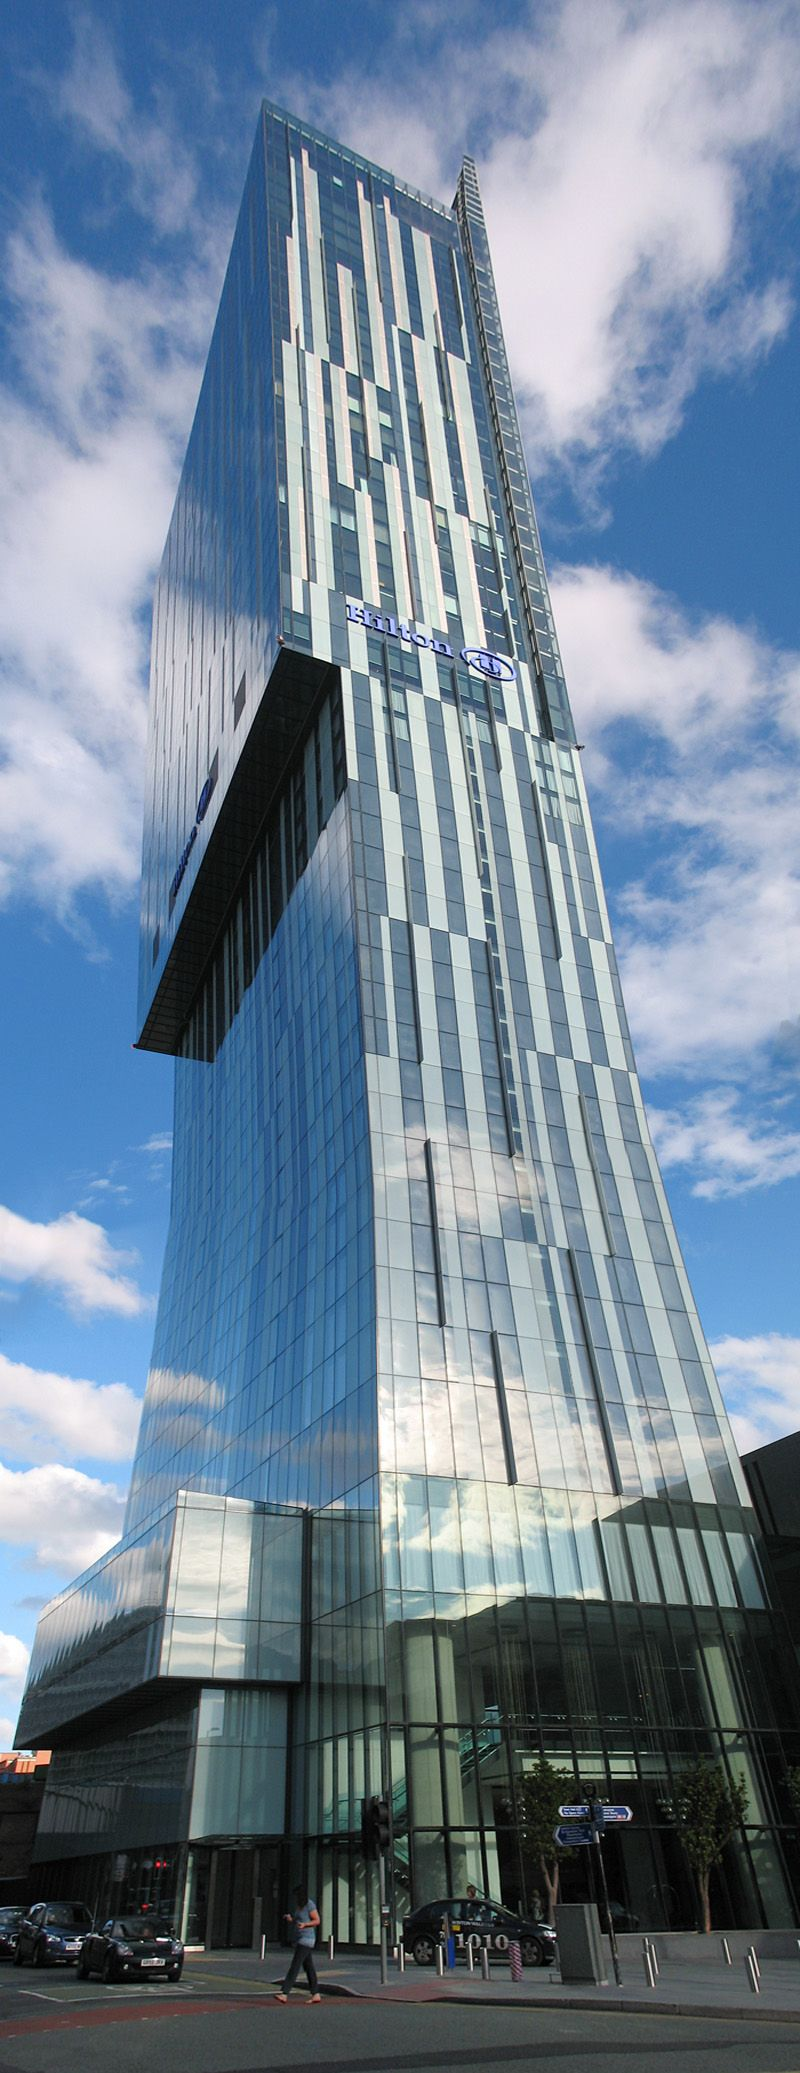 the beetham tower hilton hotel manchester england the. Black Bedroom Furniture Sets. Home Design Ideas